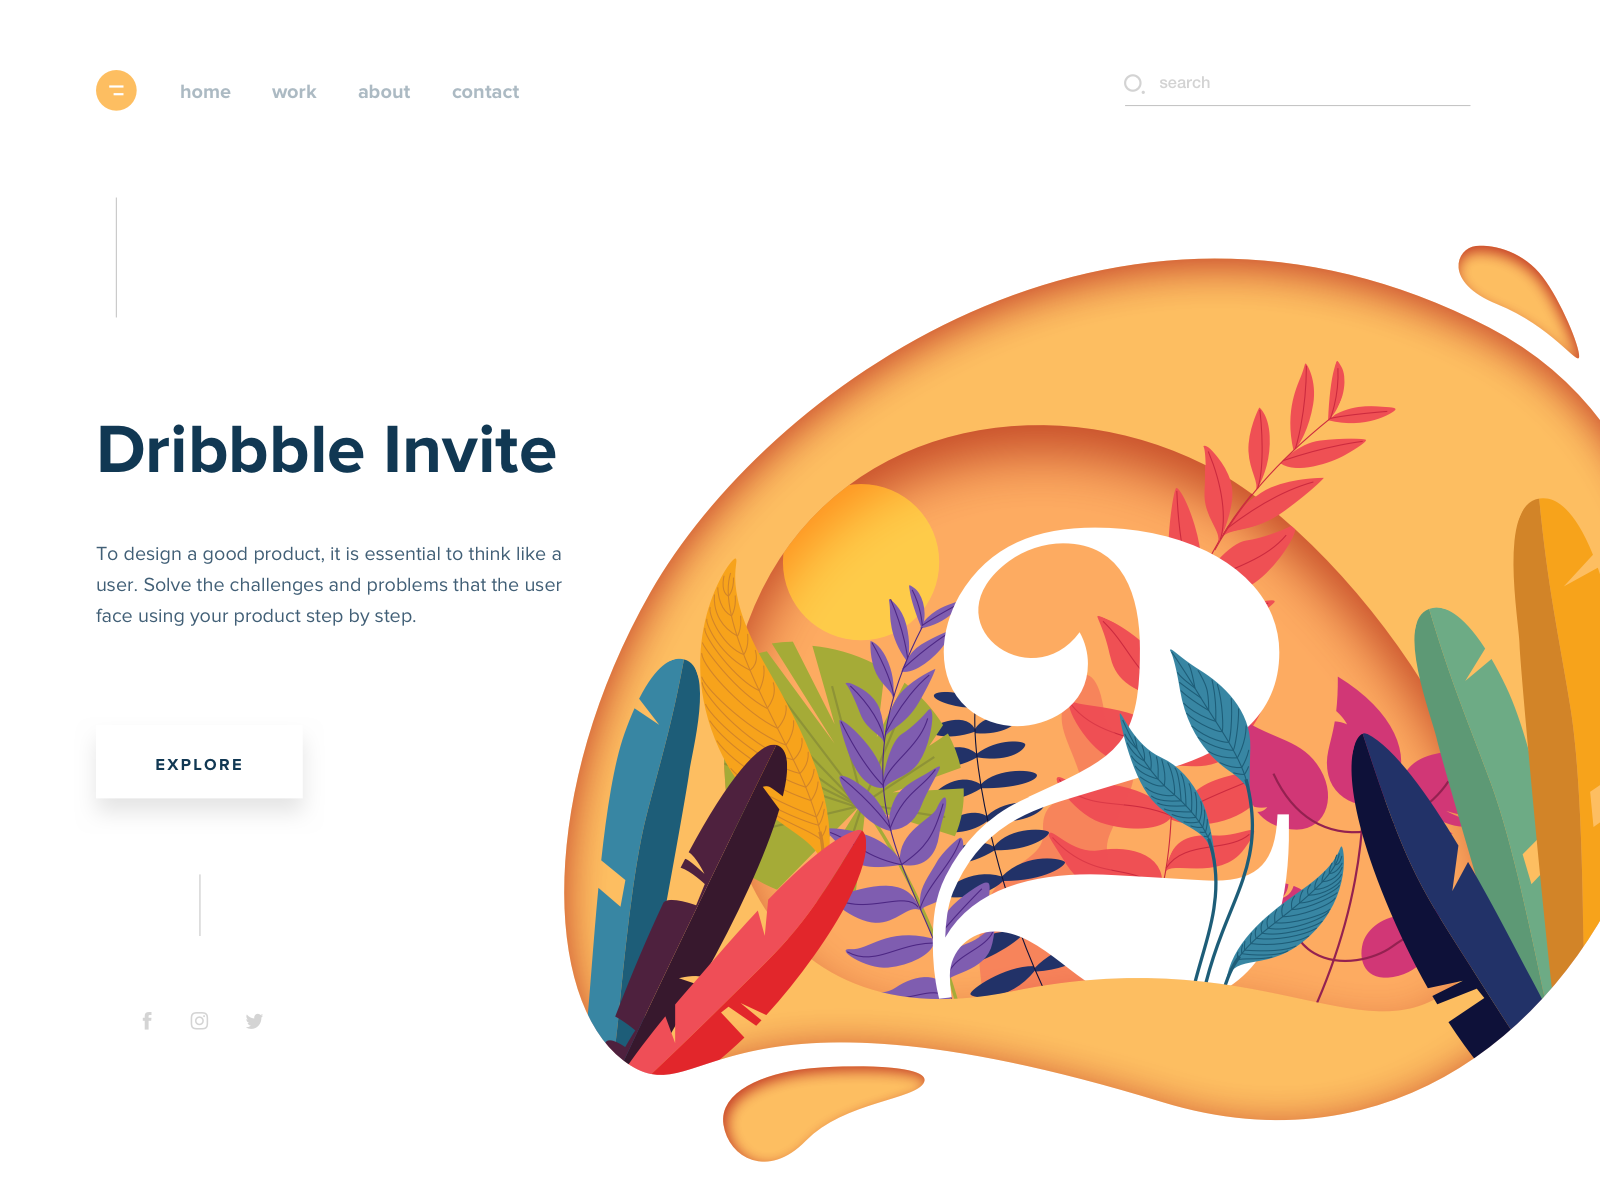 Ayush jangra dribbble invite 3 2x